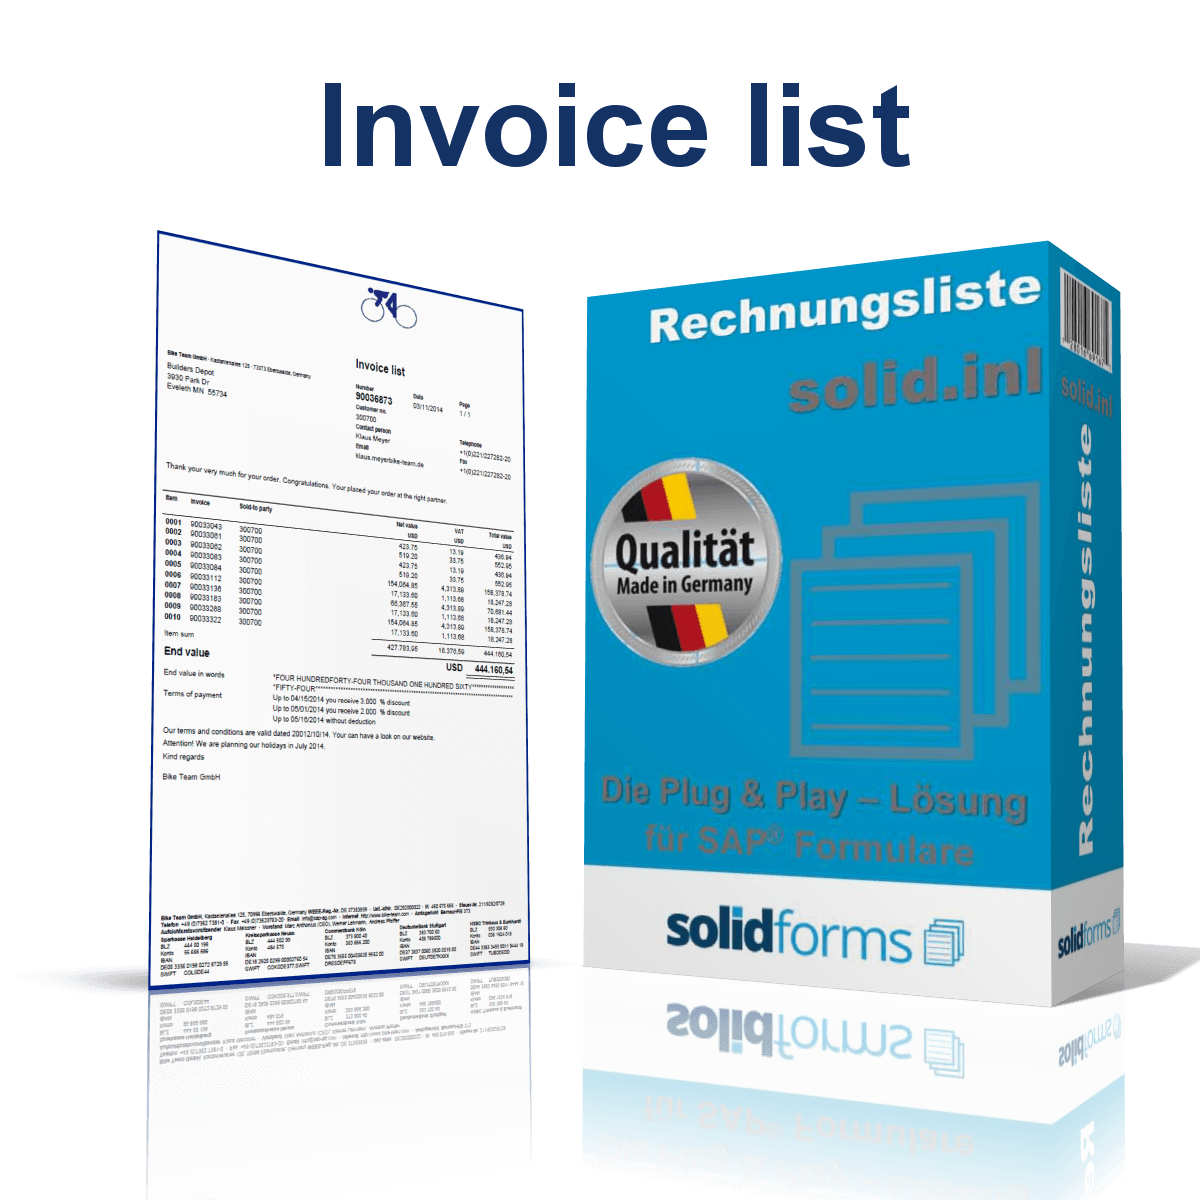 SAP form Invoice list based on SAP Interactive Forms by Adobe